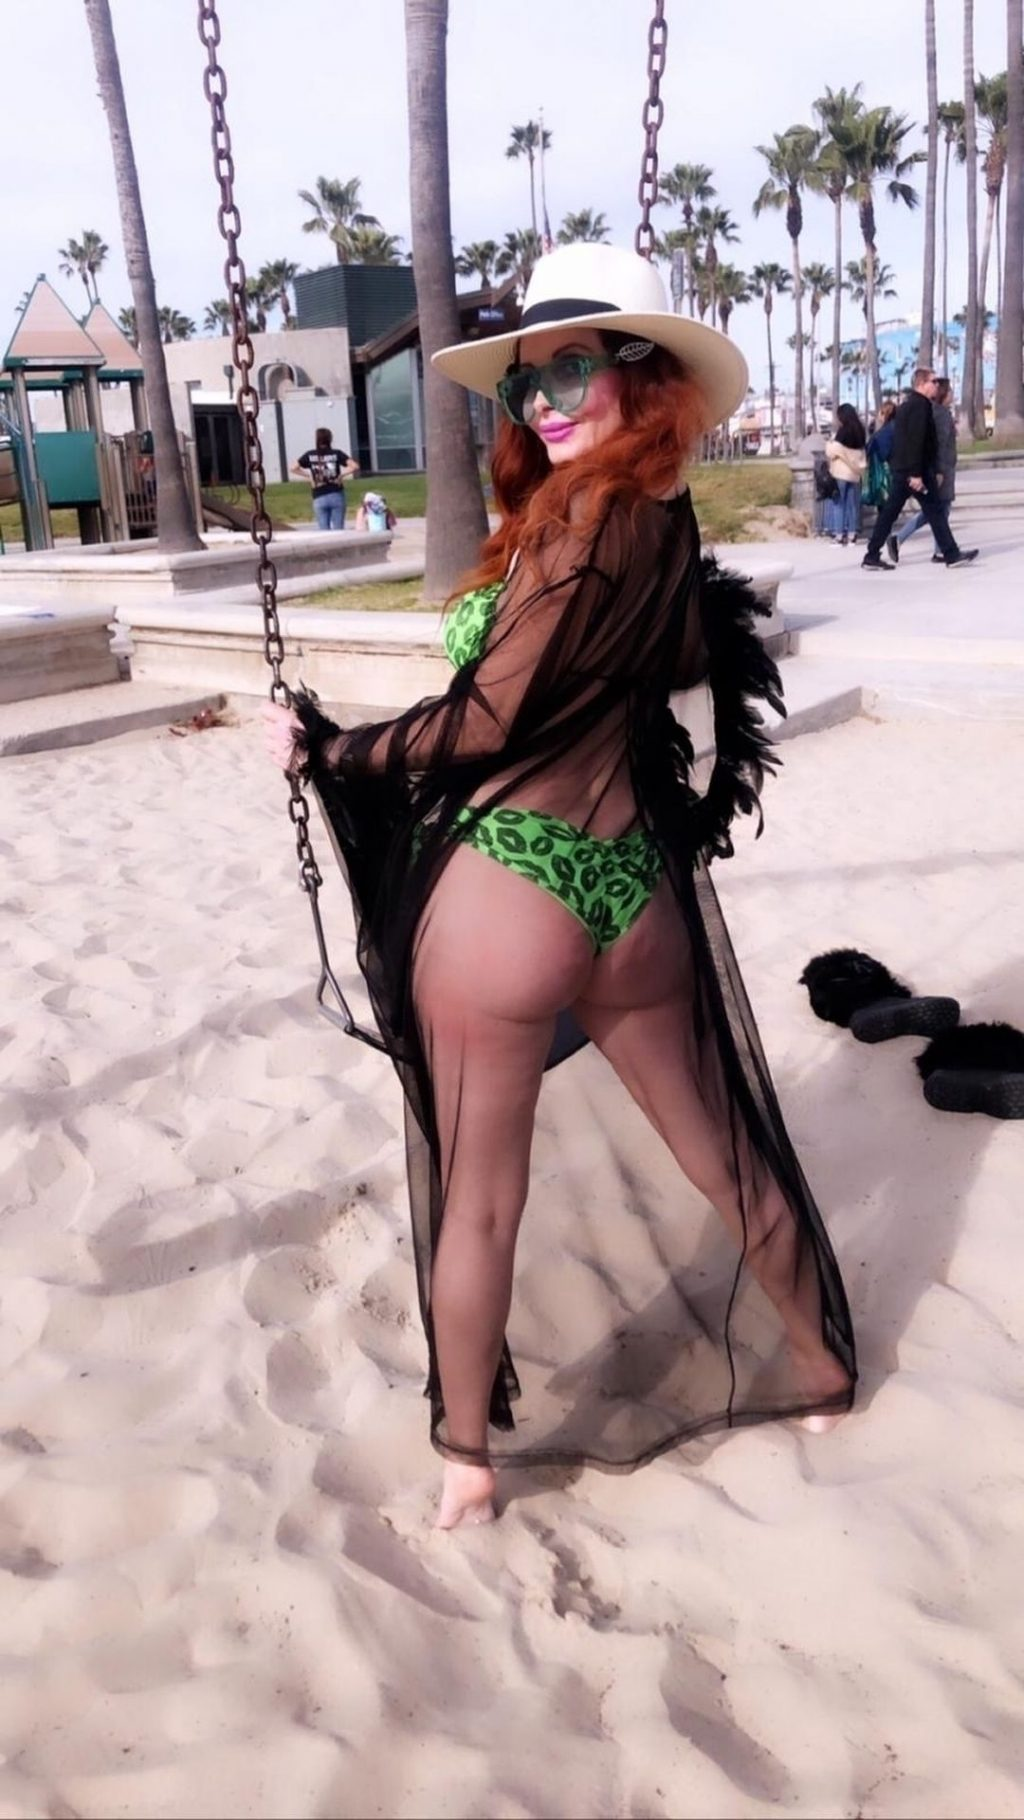 Phoebe Price Shows Off Her Curves in Venice Beach (64 Photos + Videos)